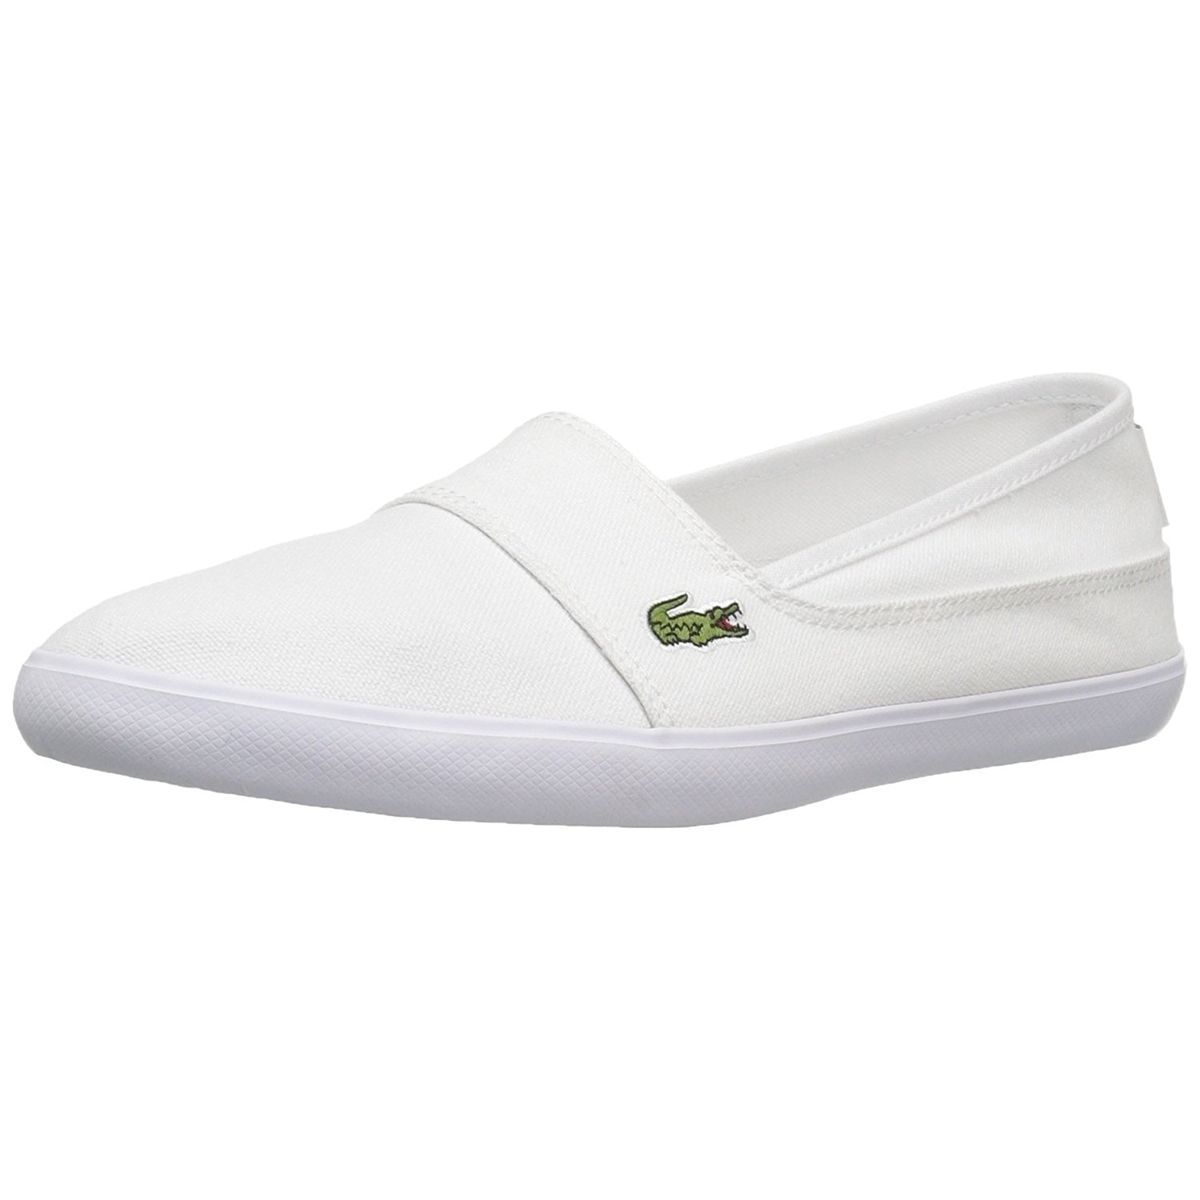 Lacoste Women NEW Marice Series Canvas Fashion Sneakers Slip On Flats Shoes